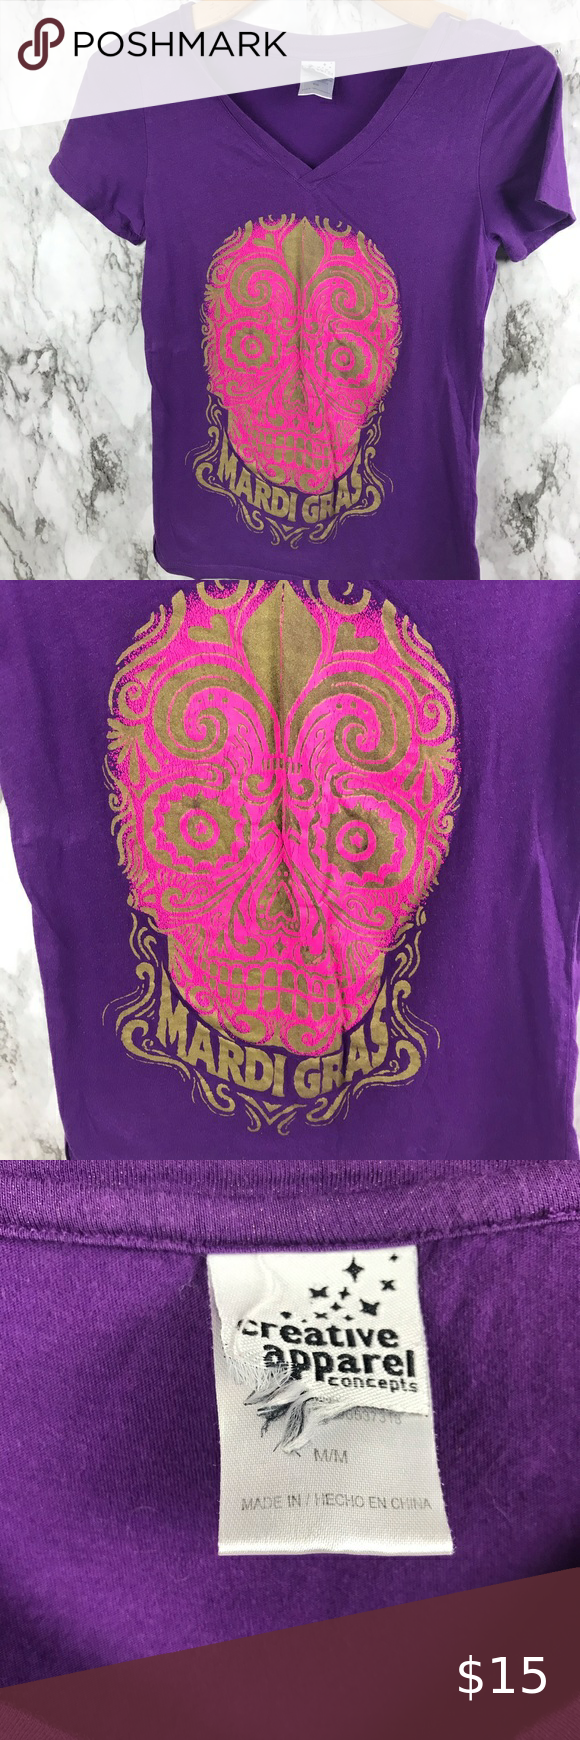 """Mardi Gras Graphic Tee Shirt Purple Size M Size Medium Pit to pit 16"""" Length is 23"""" #010 Creative Apparel Tops Tees - Short Sleeve"""